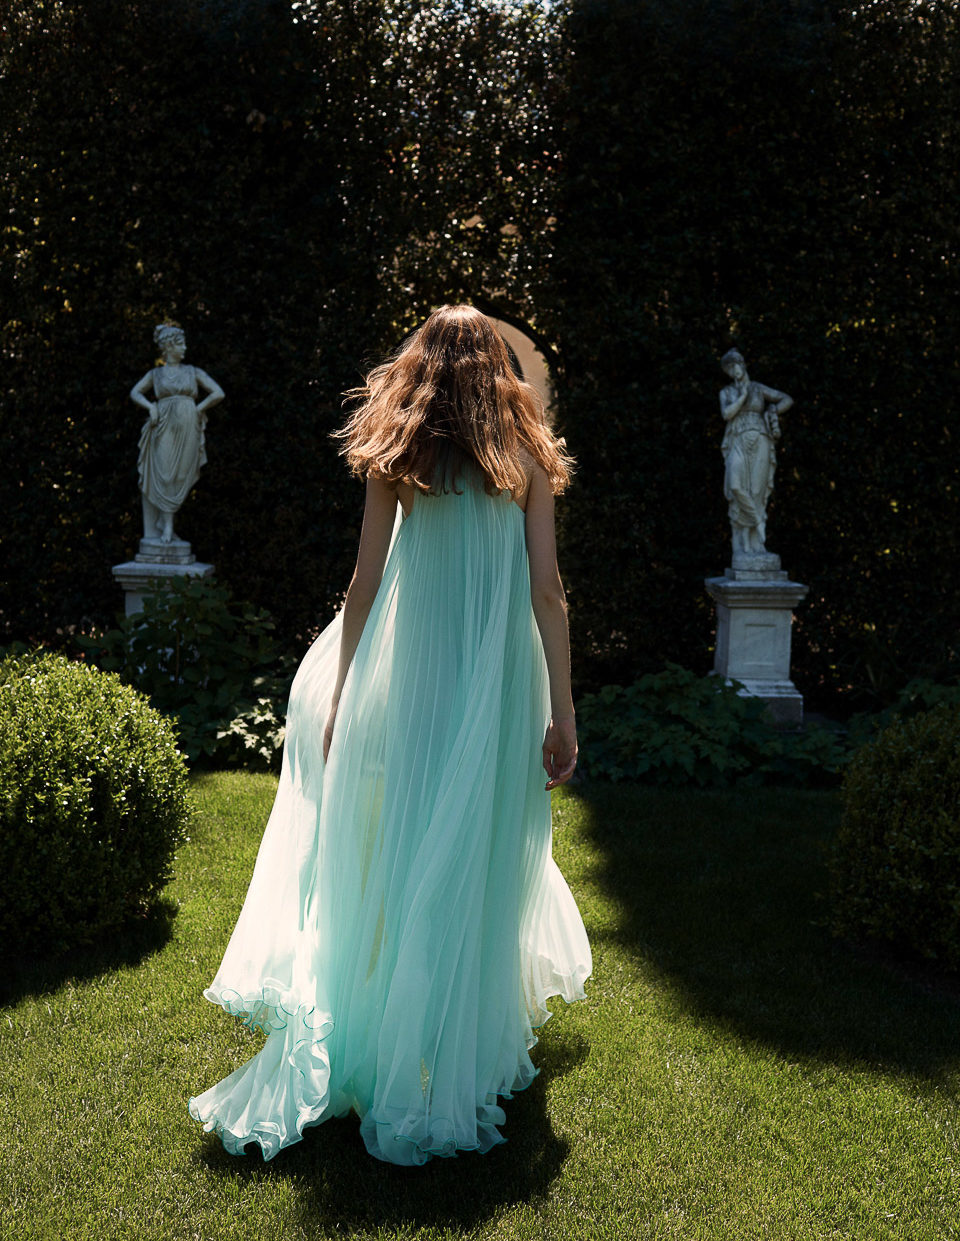 Monique Lhuillier Spring Heritage collection fashion shoot Villa Balbiano exclusive private property luxury residence property private rent rental Lake Como Milan Italy fashion e1569595056760